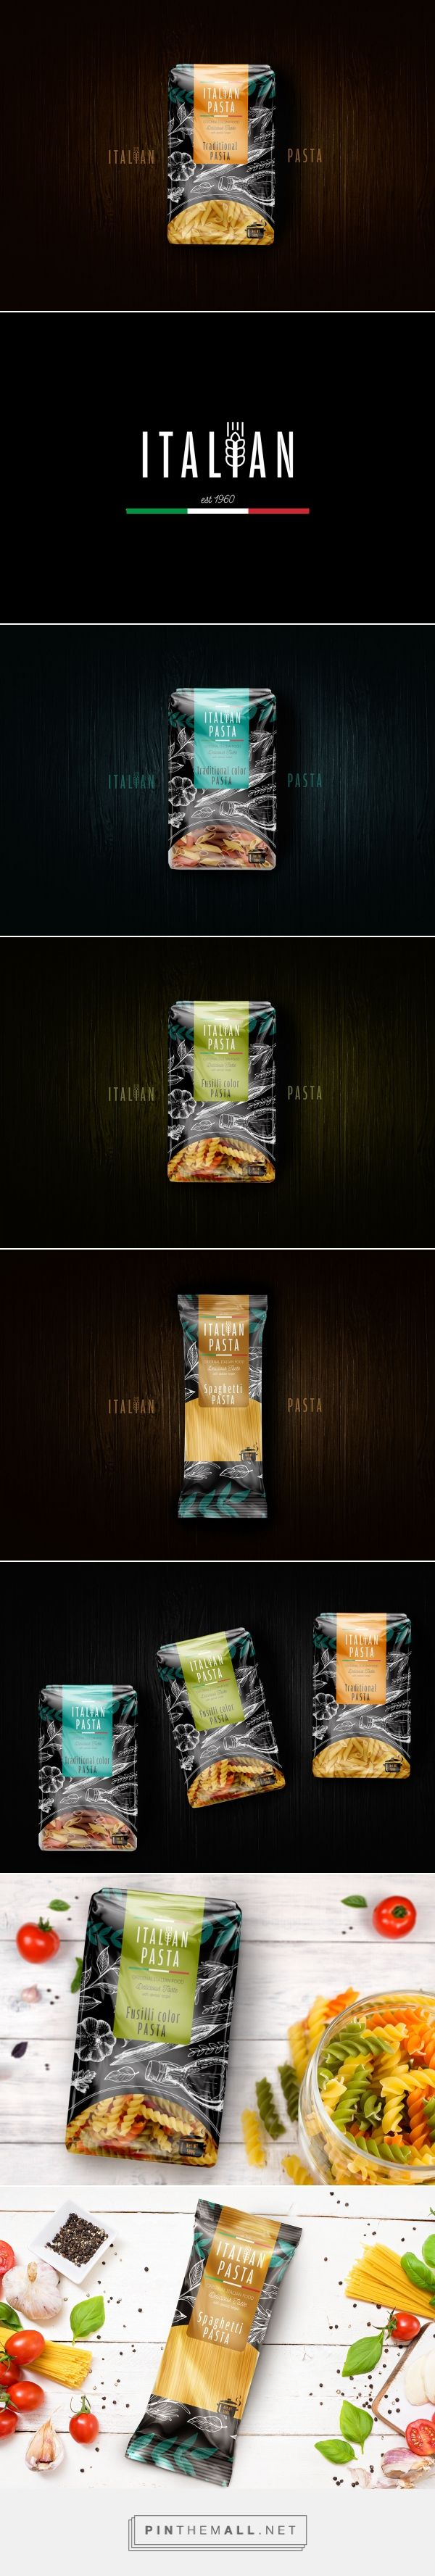 Italian Pasta brand by Farad Mahmoud. Source: Behance. Pin curated by#SFields99 #packaging #design #inspiration #ideas #product #branding#pasta #creative